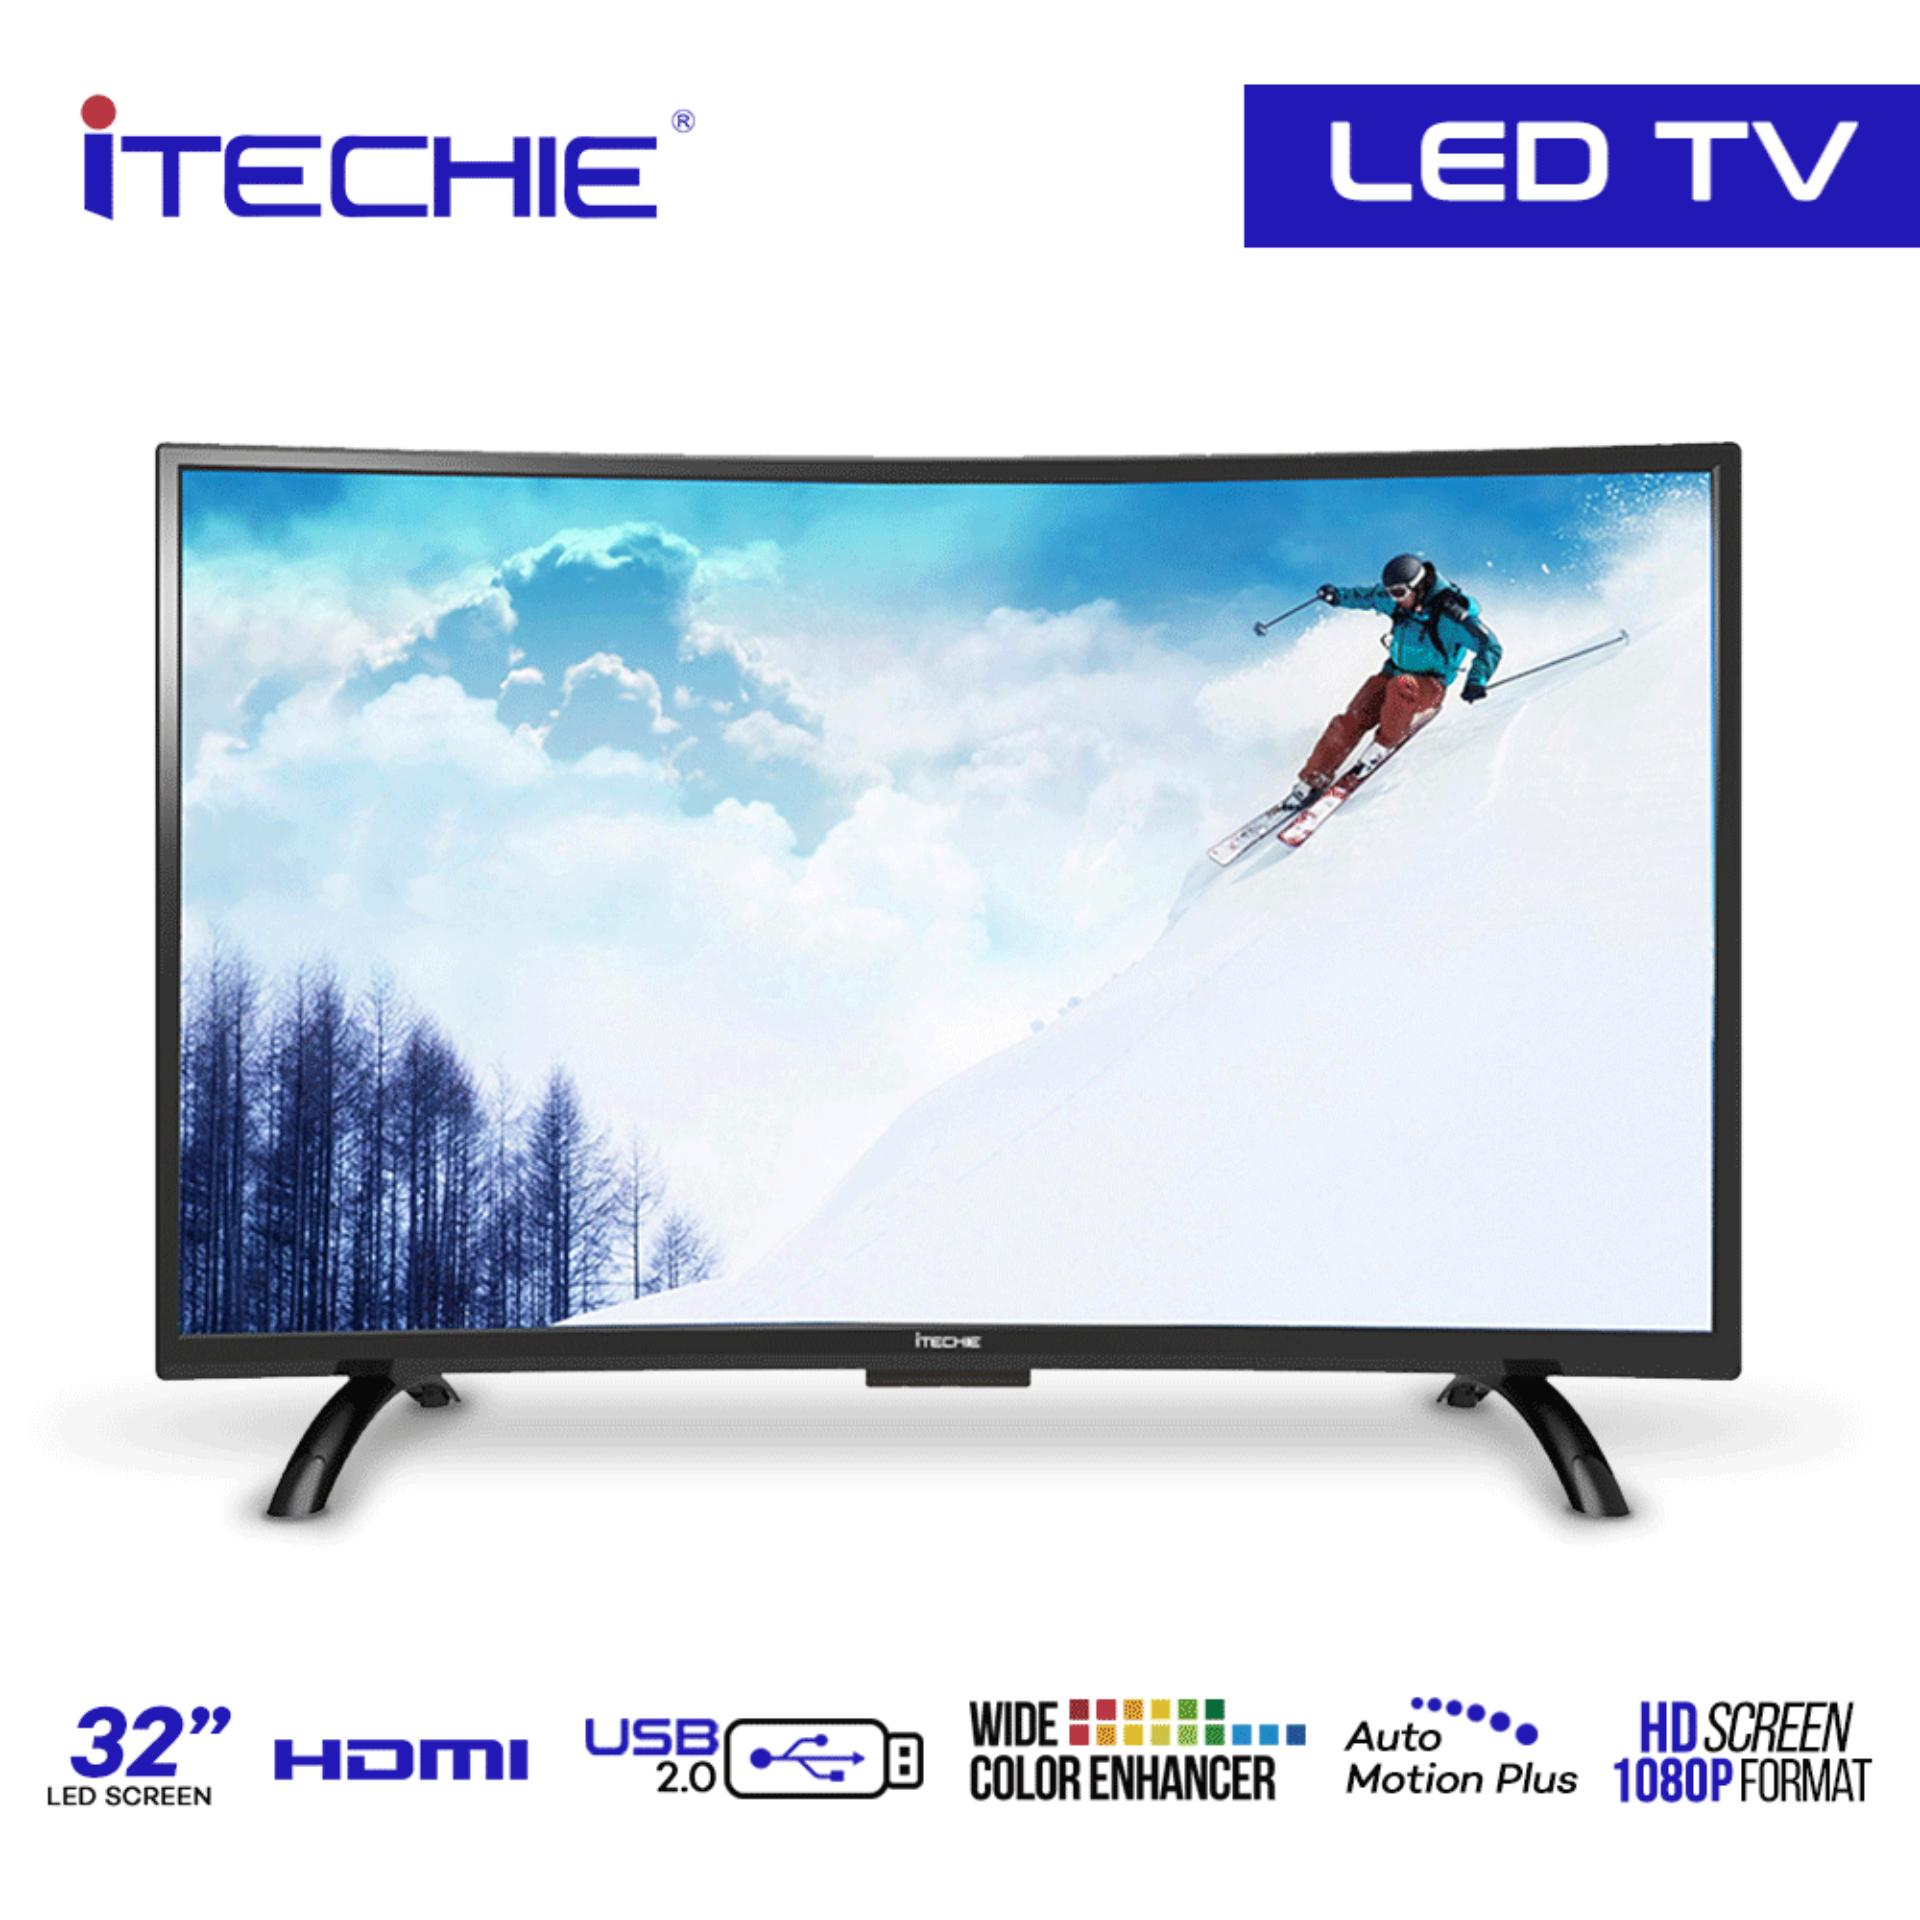 iTechie F-3200+ 32 inch led TV Curved Screen High Definition